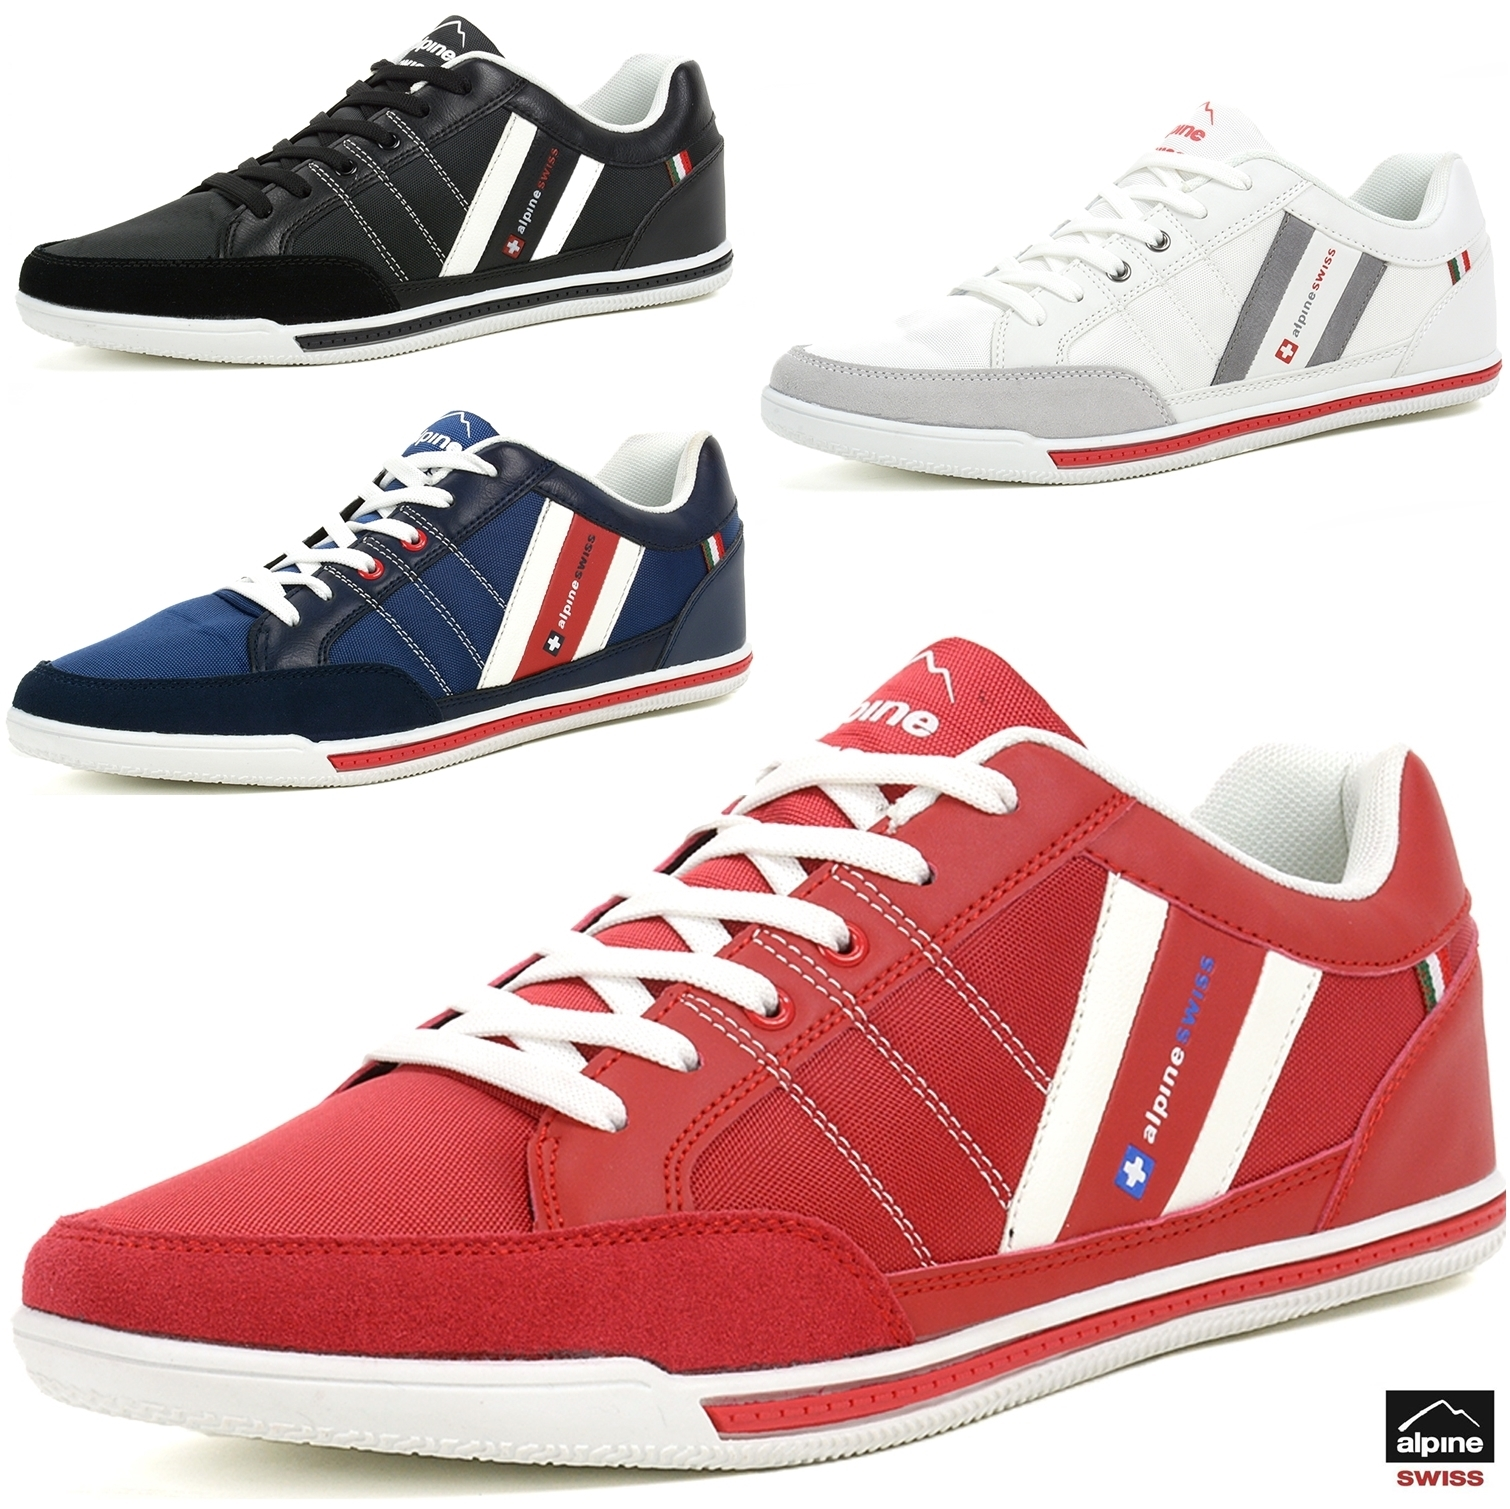 Alpine Swiss Stefan Mens Retro Fashion Sneakers Tennis Shoes Casual Athletic New Ebay